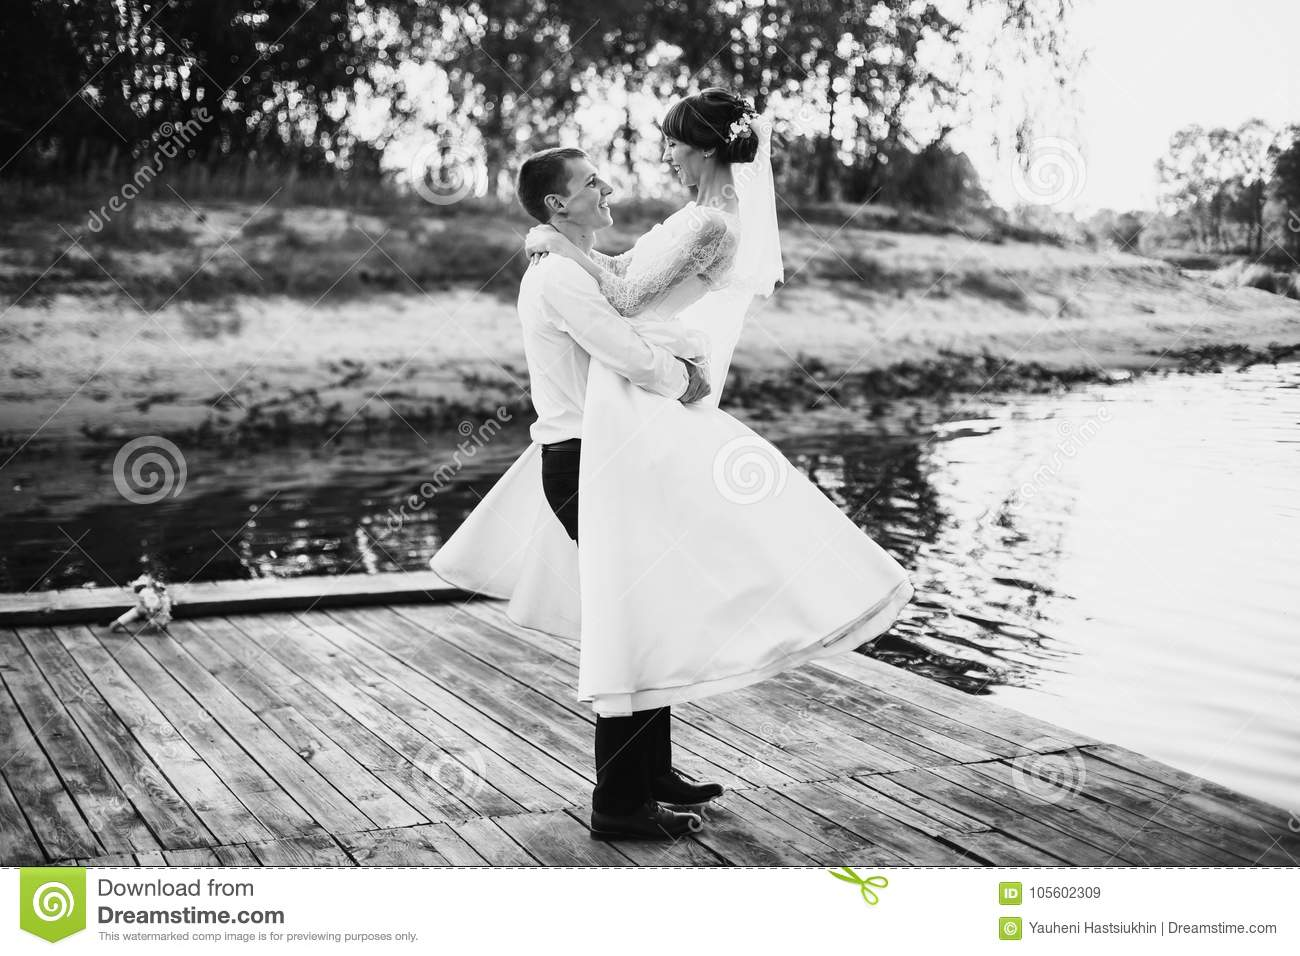 Artistic black and white photography wedding photography